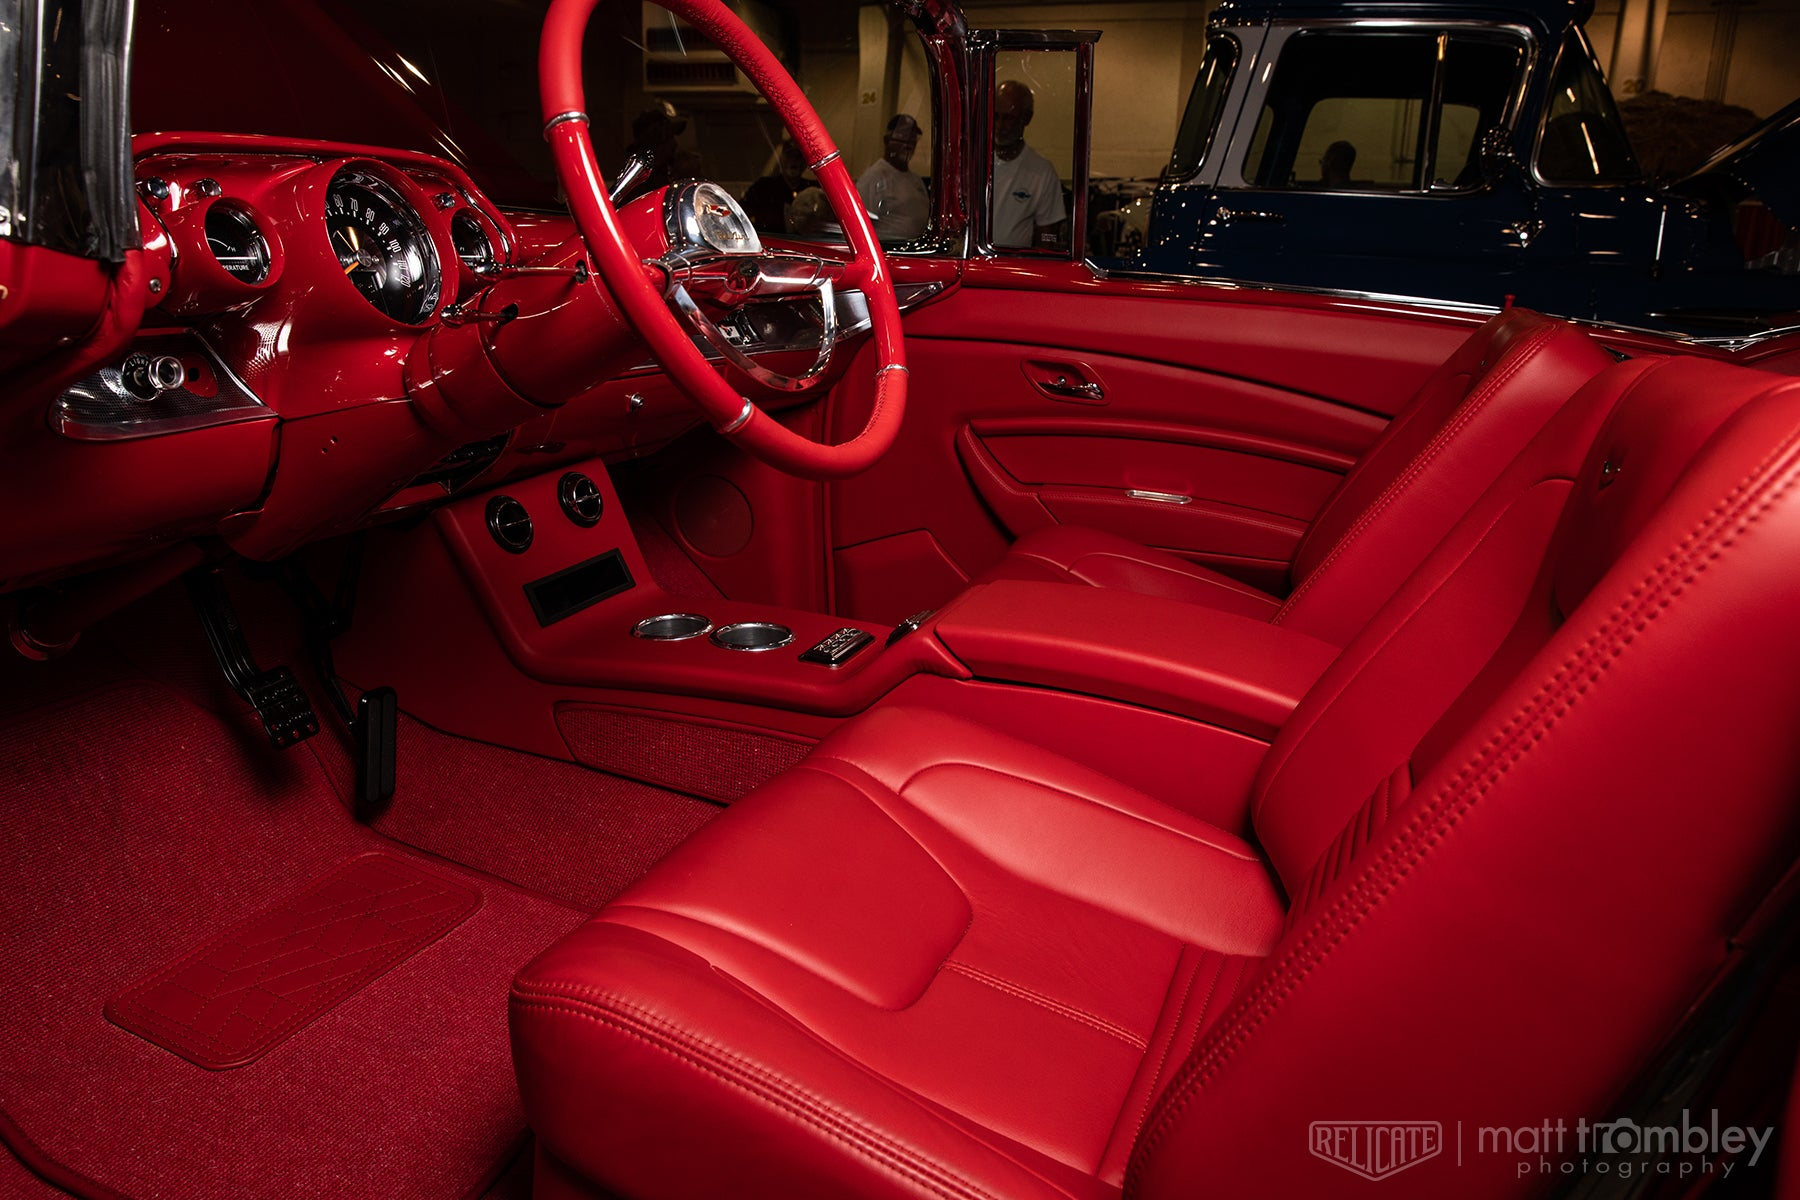 1957 Chevrolet Belair Convertible with Relicate Napali Cherry Leather